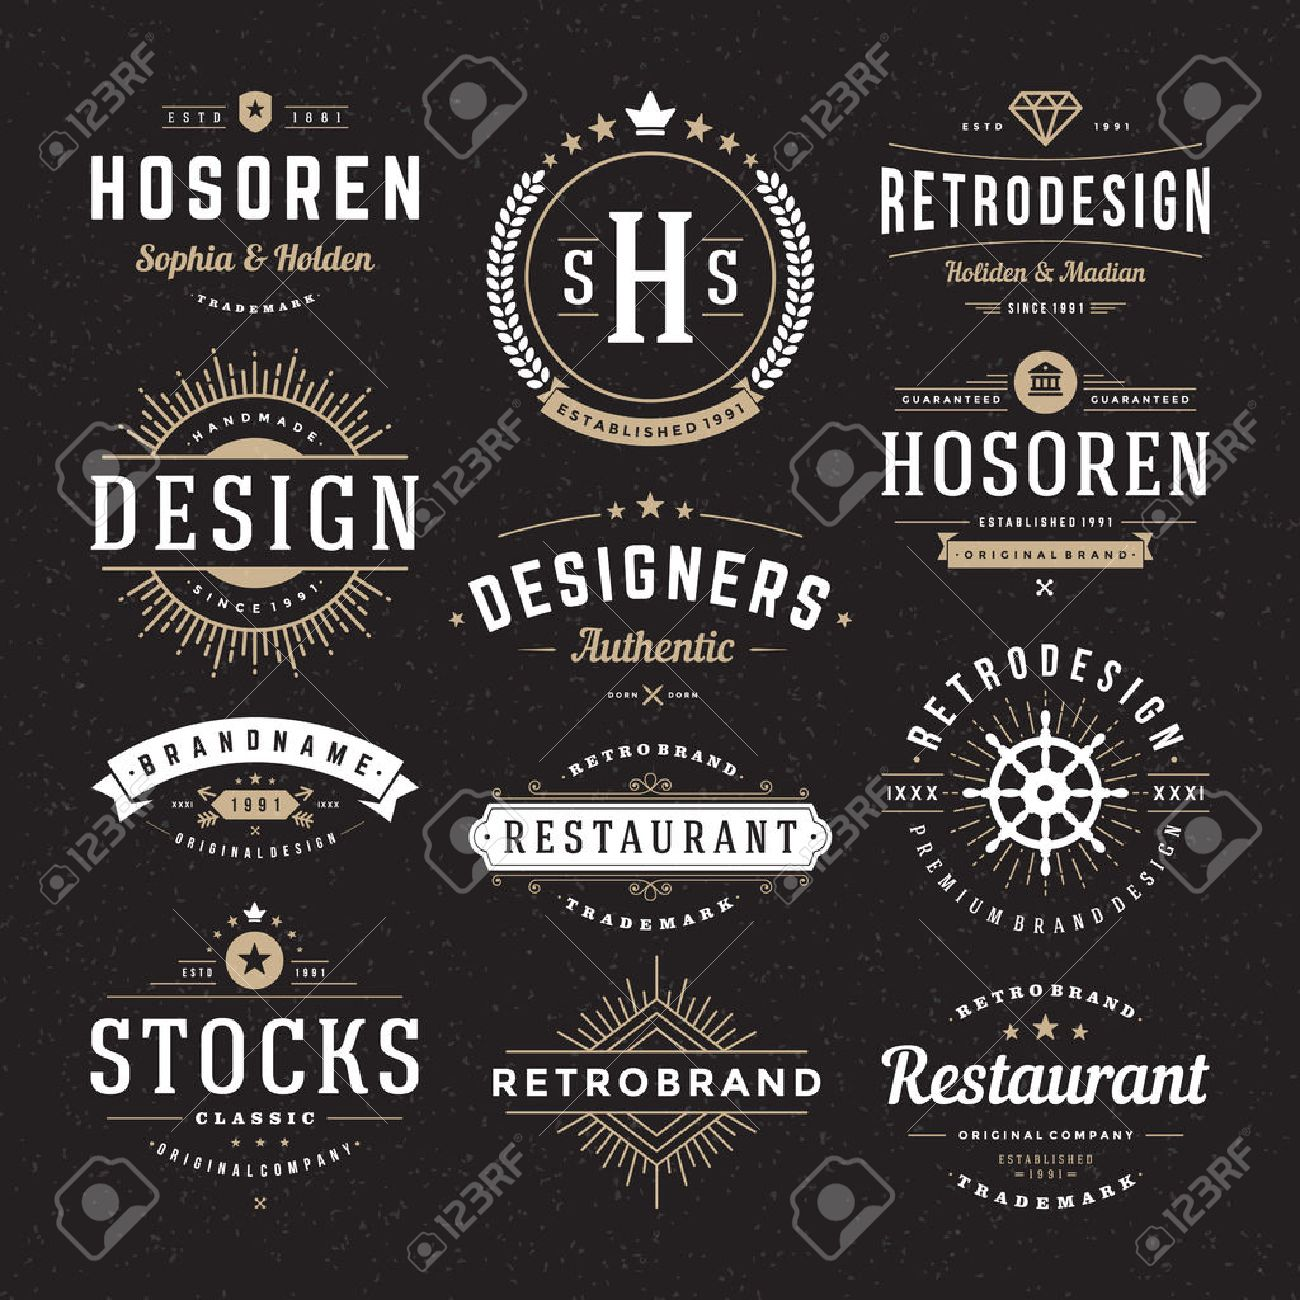 Retro Vintage Insignias or Logotypes set. Vector design elements, business signs, logos, identity, labels, badges and objects. Stock Vector - 38327712